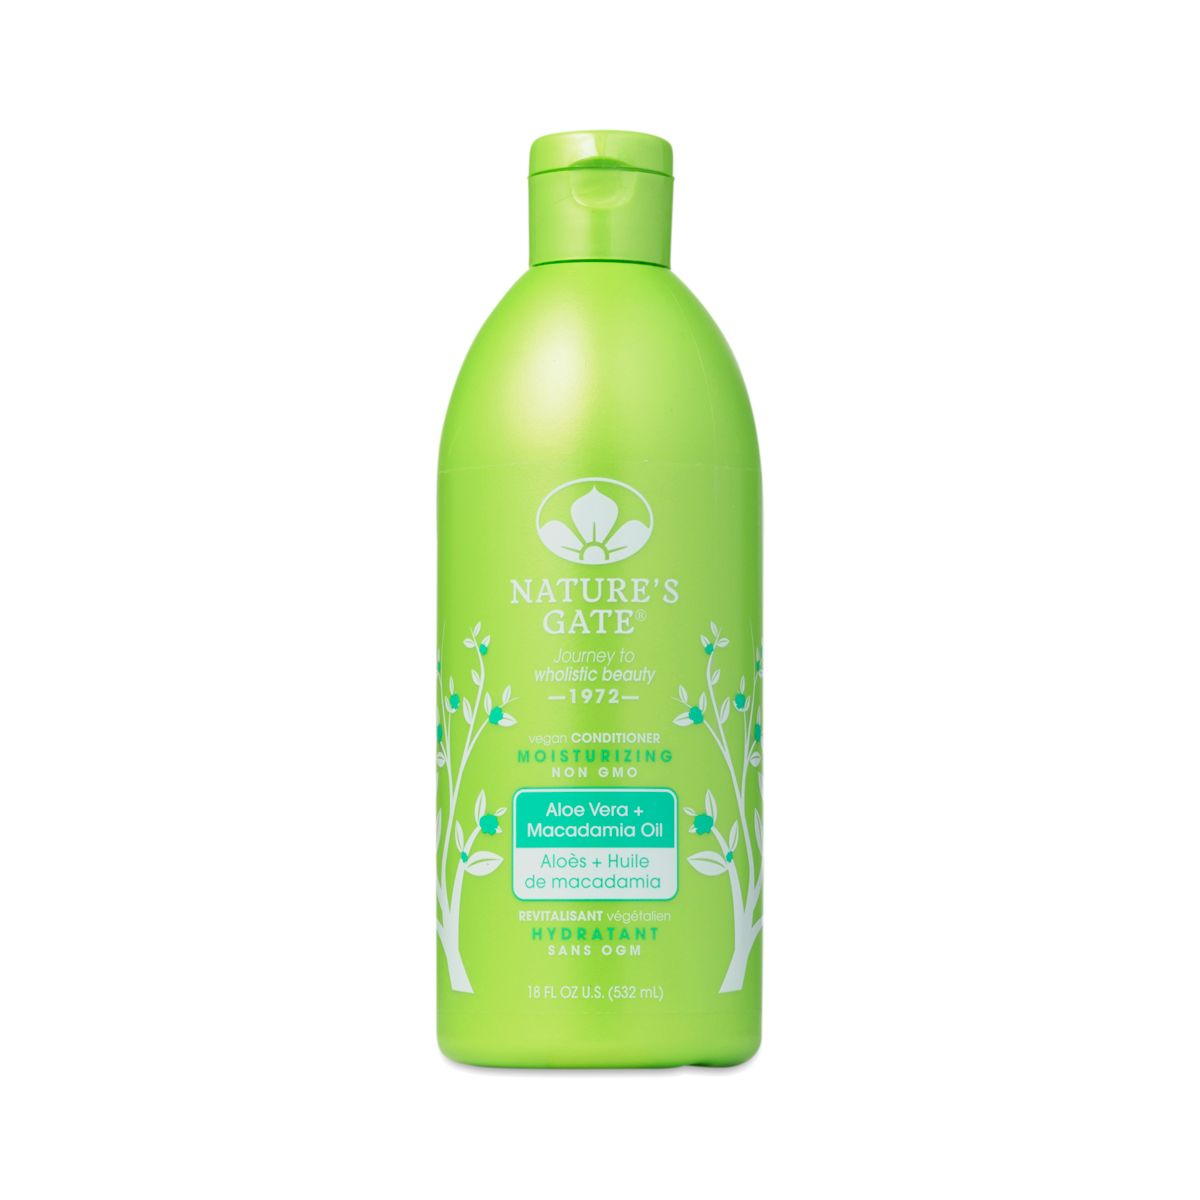 Shop Nature's Gate Aloe Vera Moisturizing Conditioner at wholesale price only at ThriveMarket.com